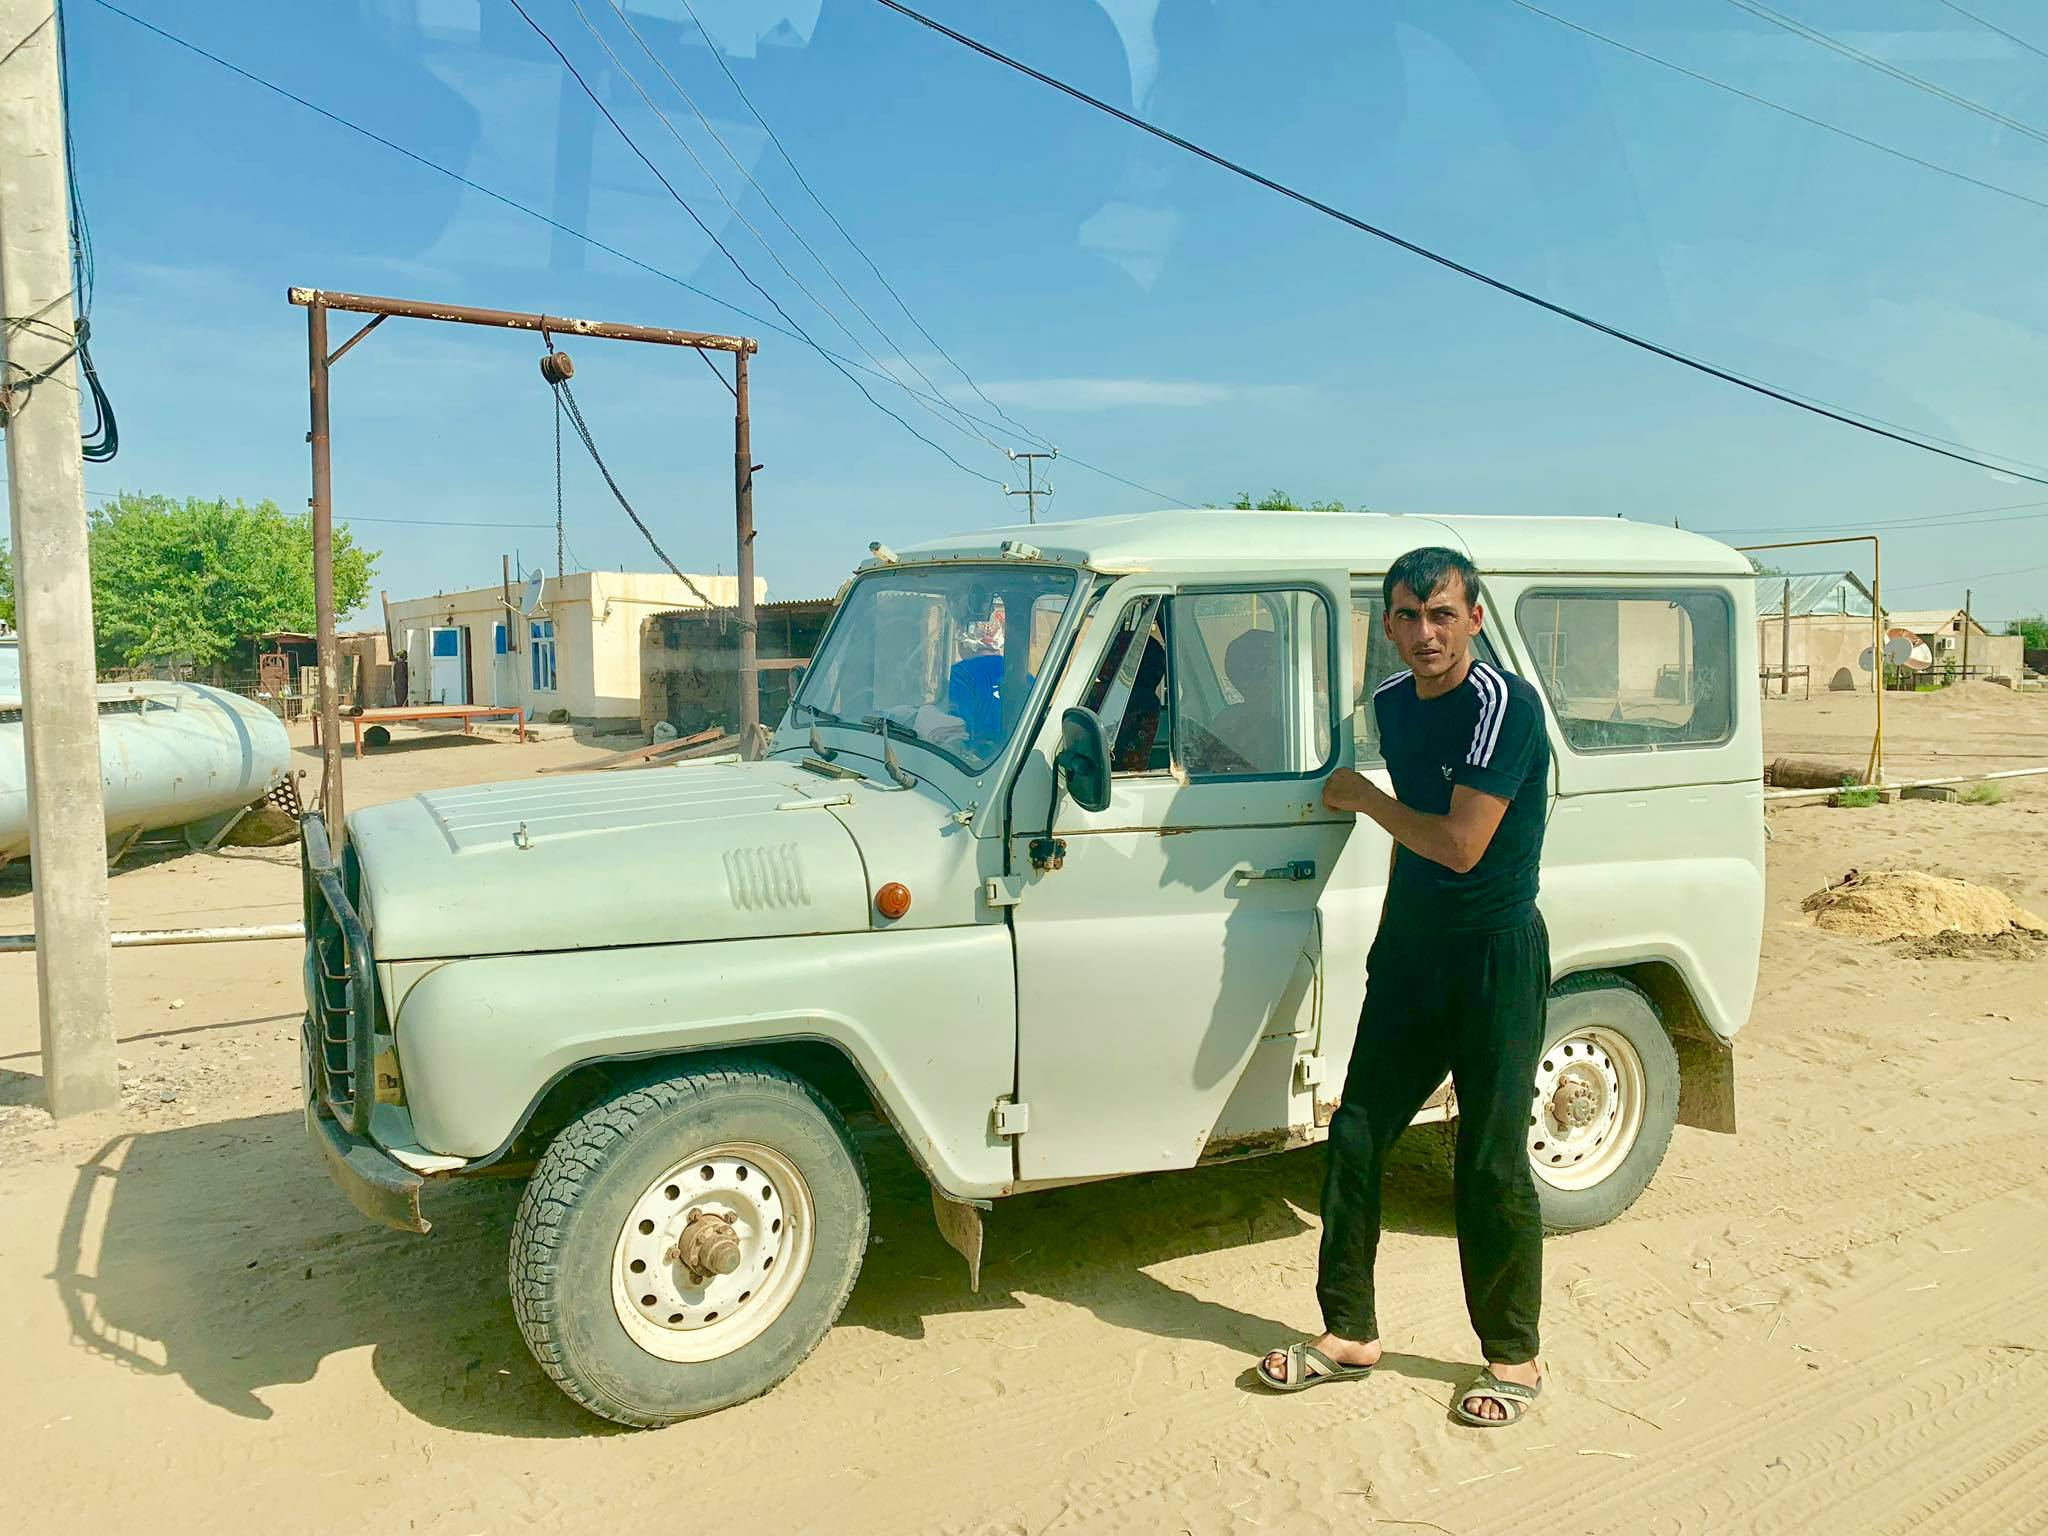 Kach Solo Travels in 2019 Made it to DARVAZA31.jpg